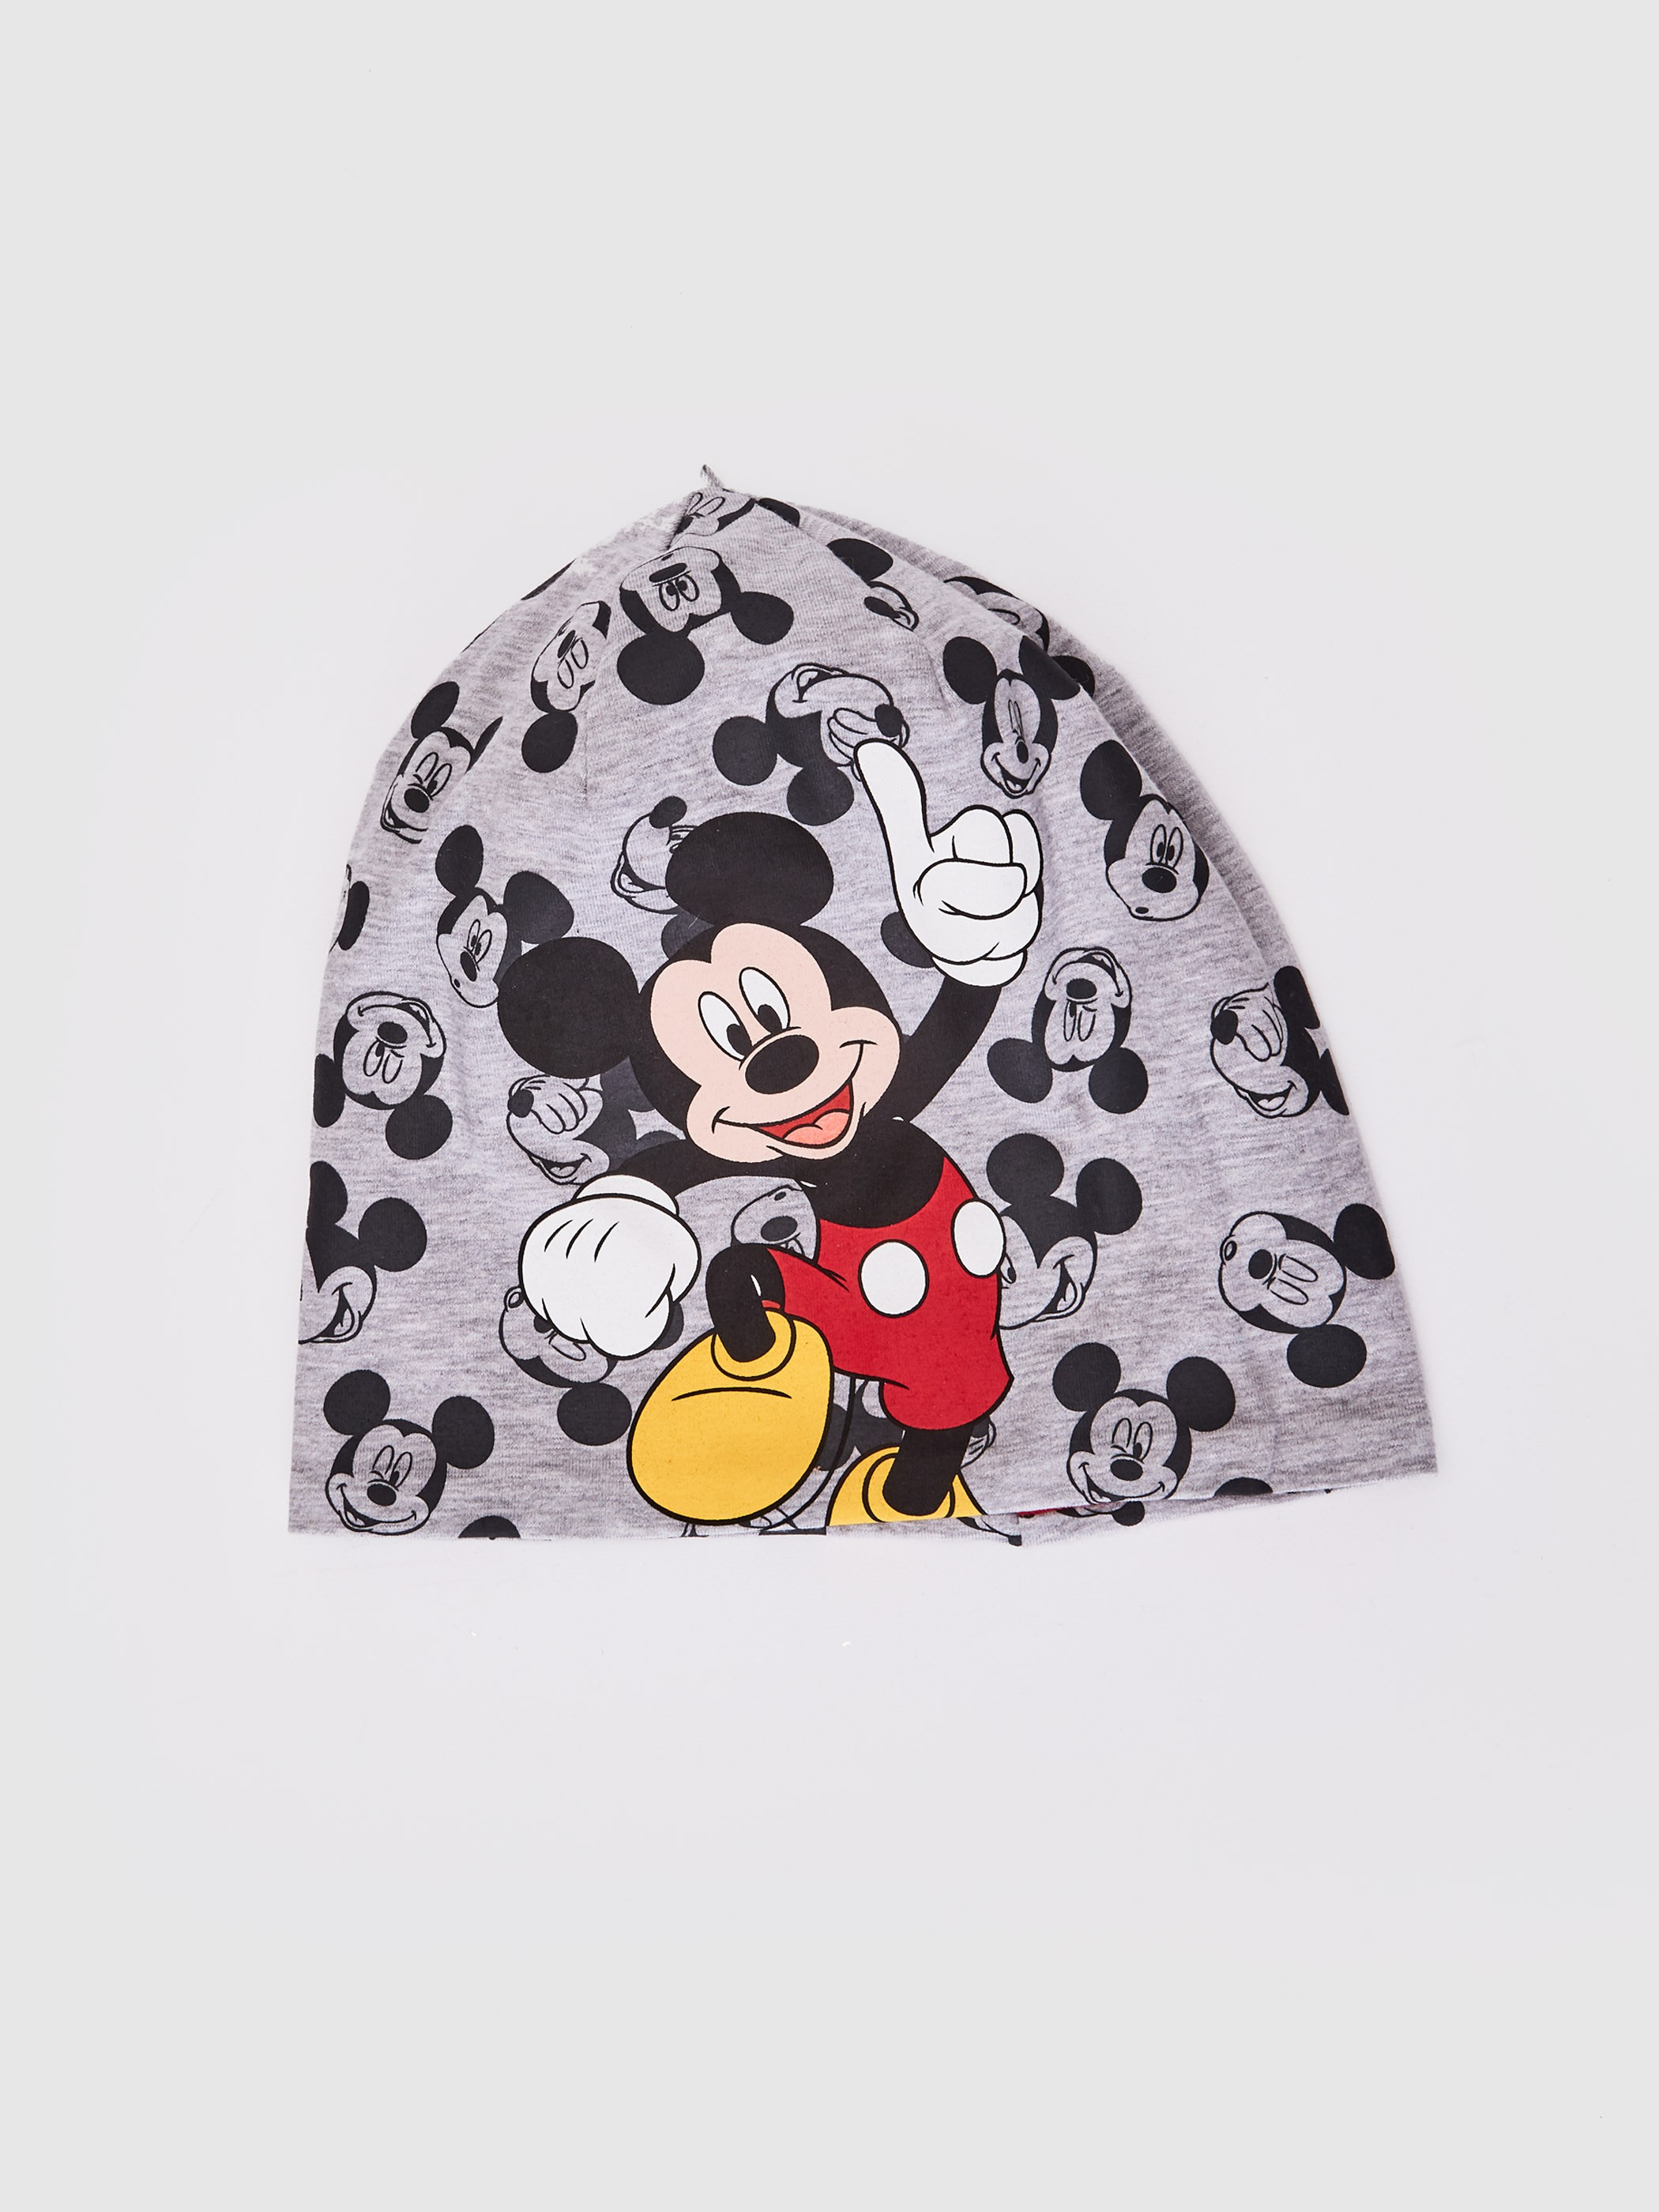 GREY - Boy Mickey Mouse Licensed Cotton Jersey Beanie - 0S6295Z4